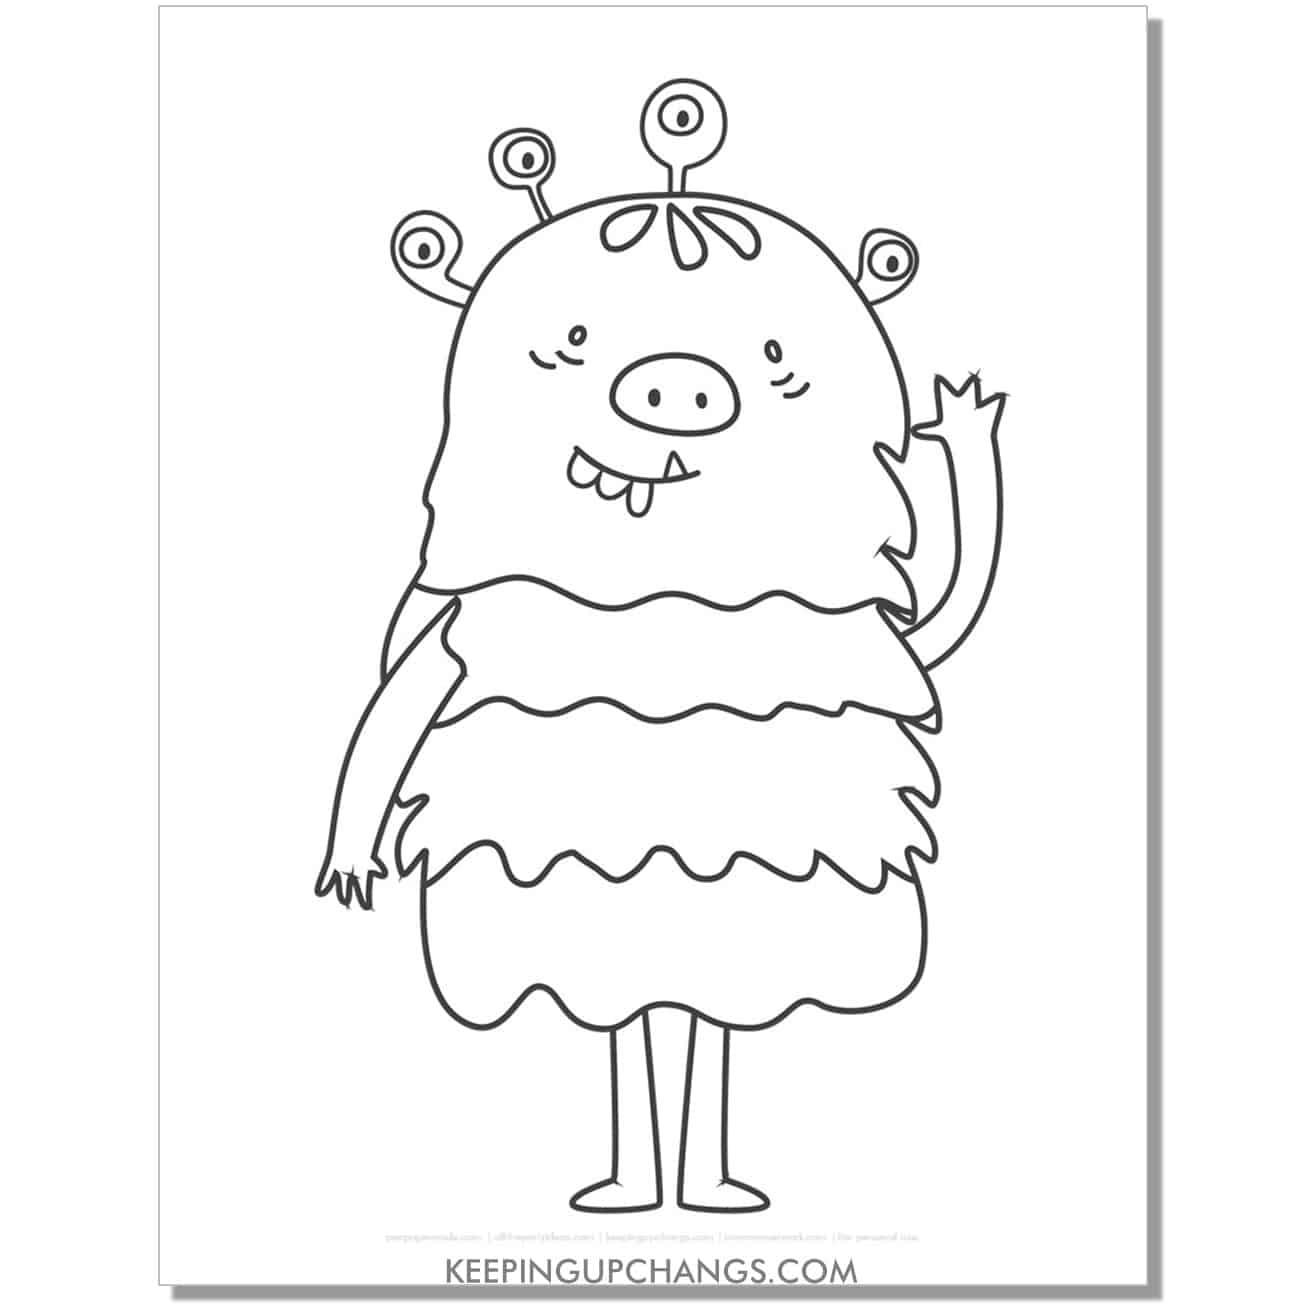 free friendly girl monster coloring page.